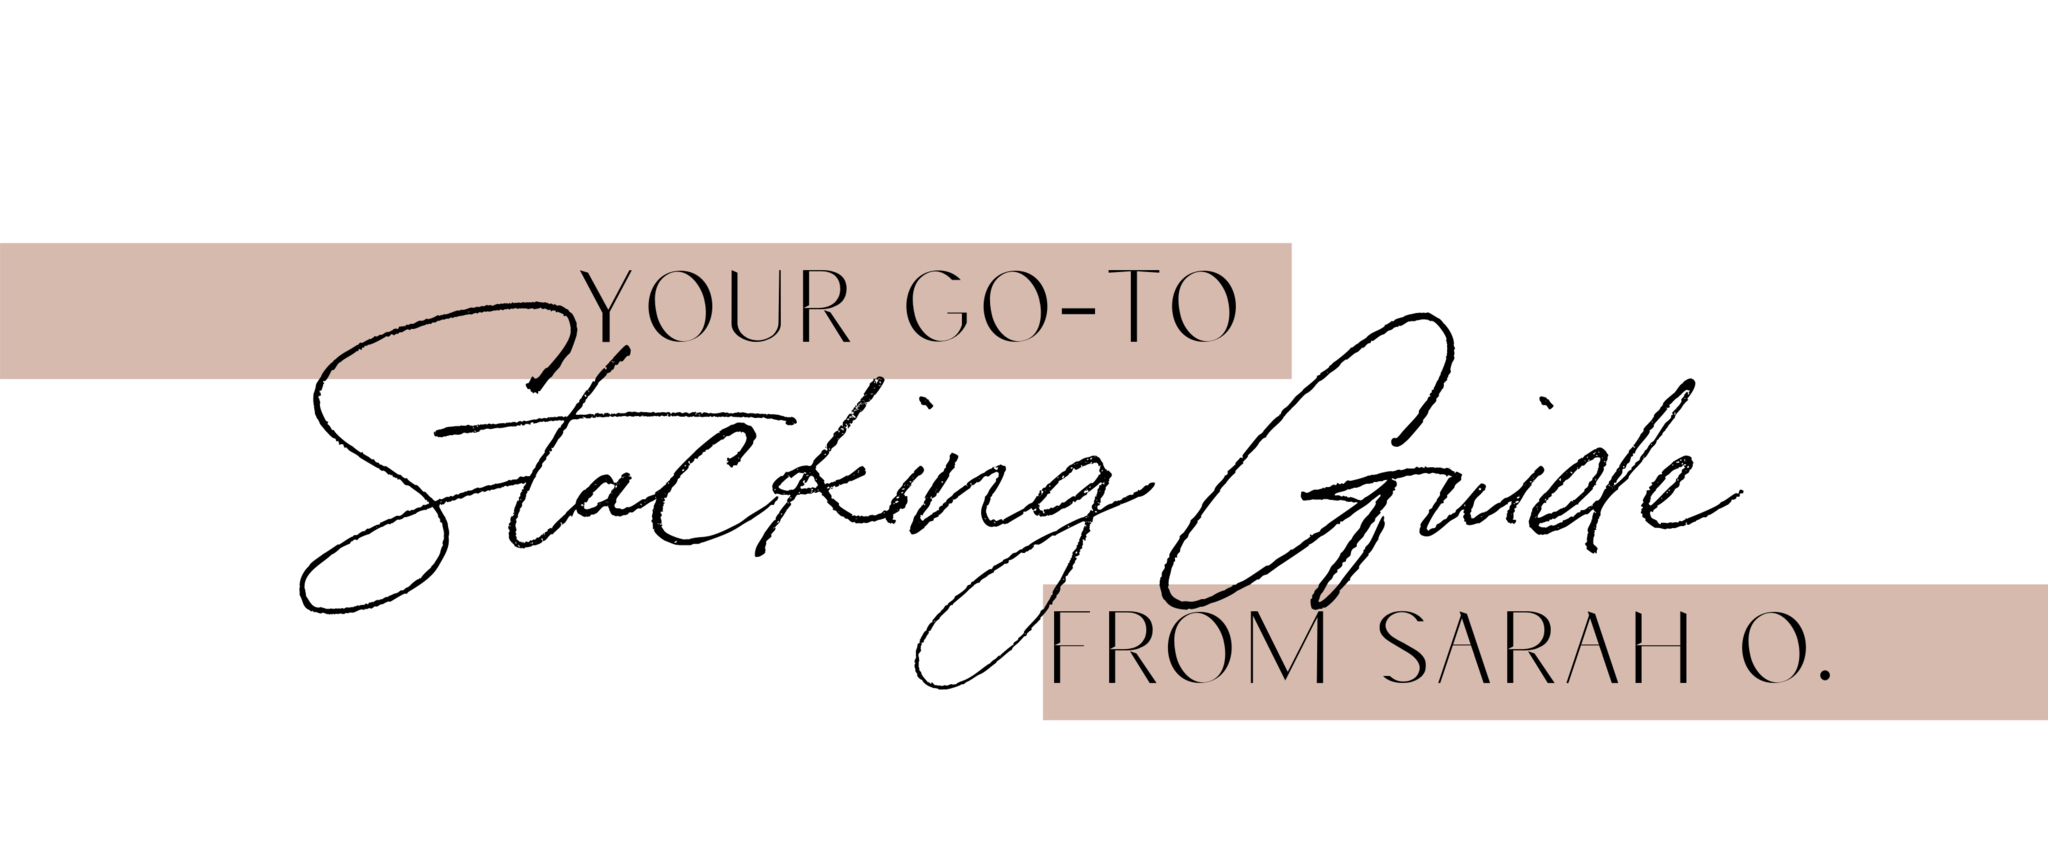 Your Go-To Stacking Guide at Sarah O.